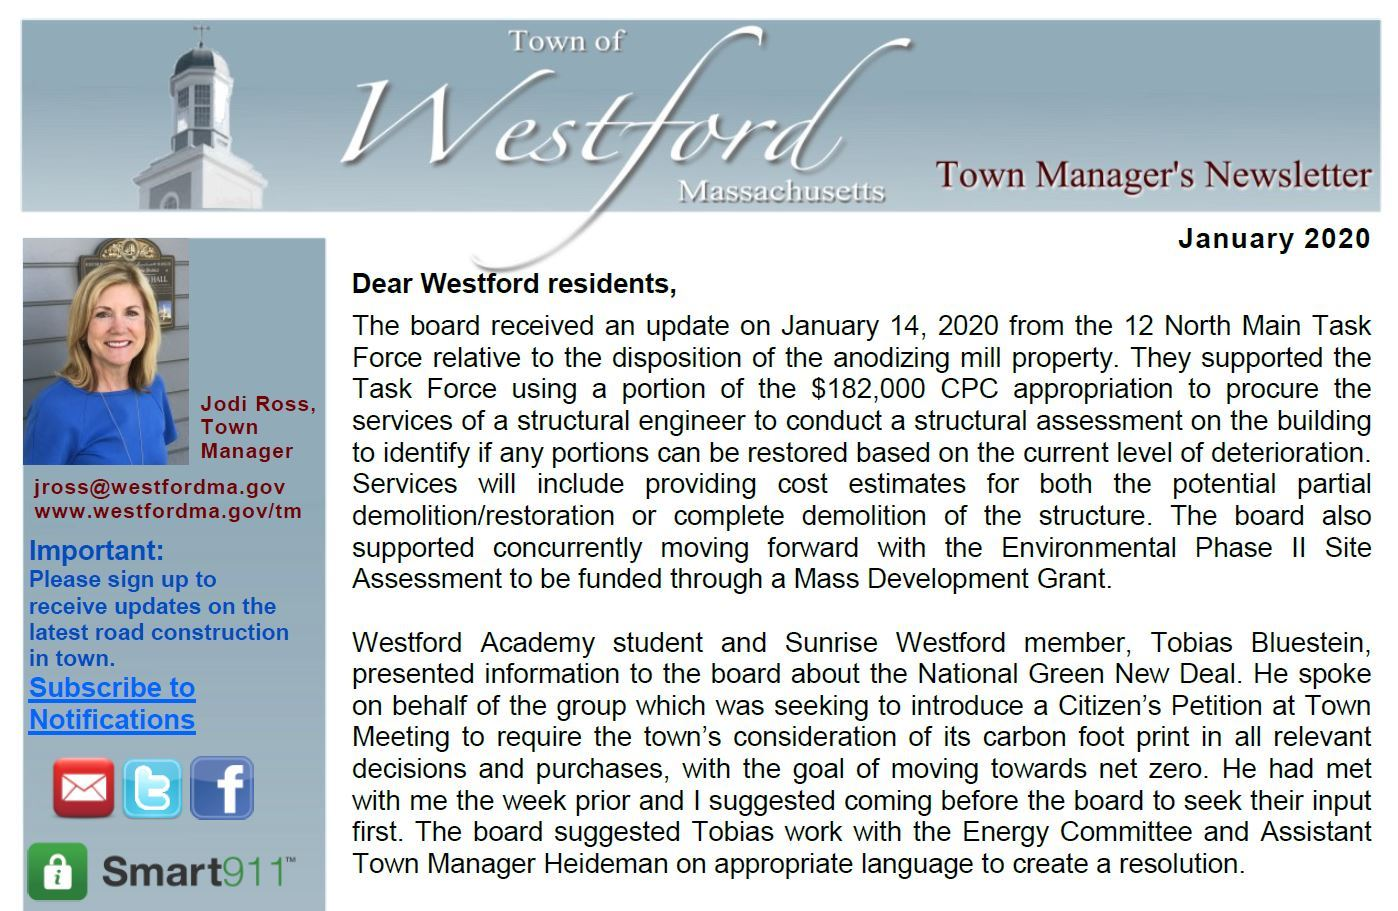 Jan 2020 Town Manager's Newsletter